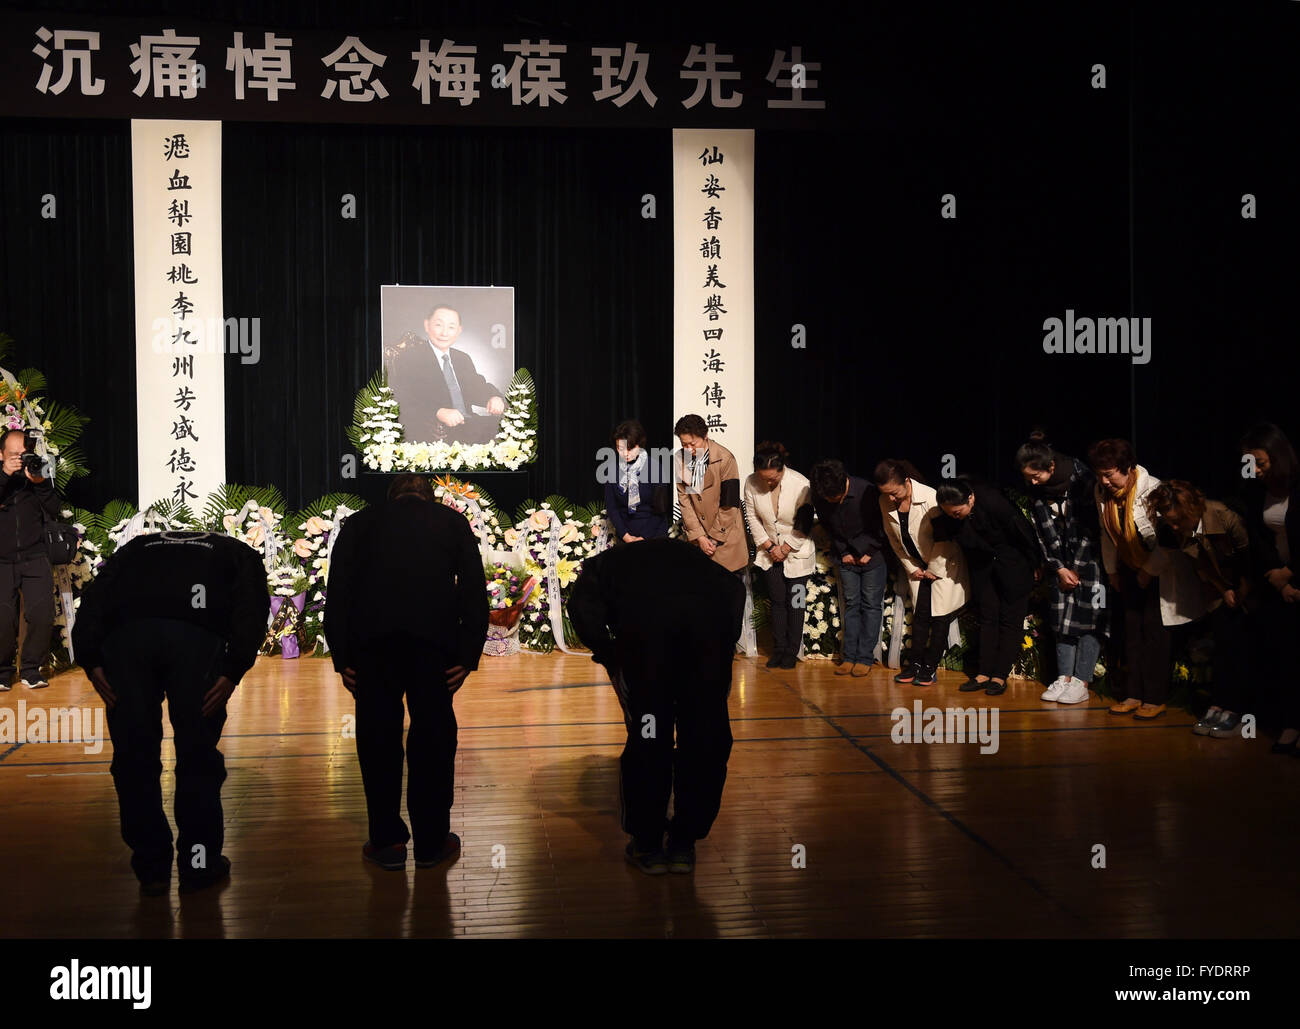 Beijing, China. 26th Apr, 2016. People attend the funeral of Mei Baojiu in Beijing, capital of China, April 26, - Stock Image